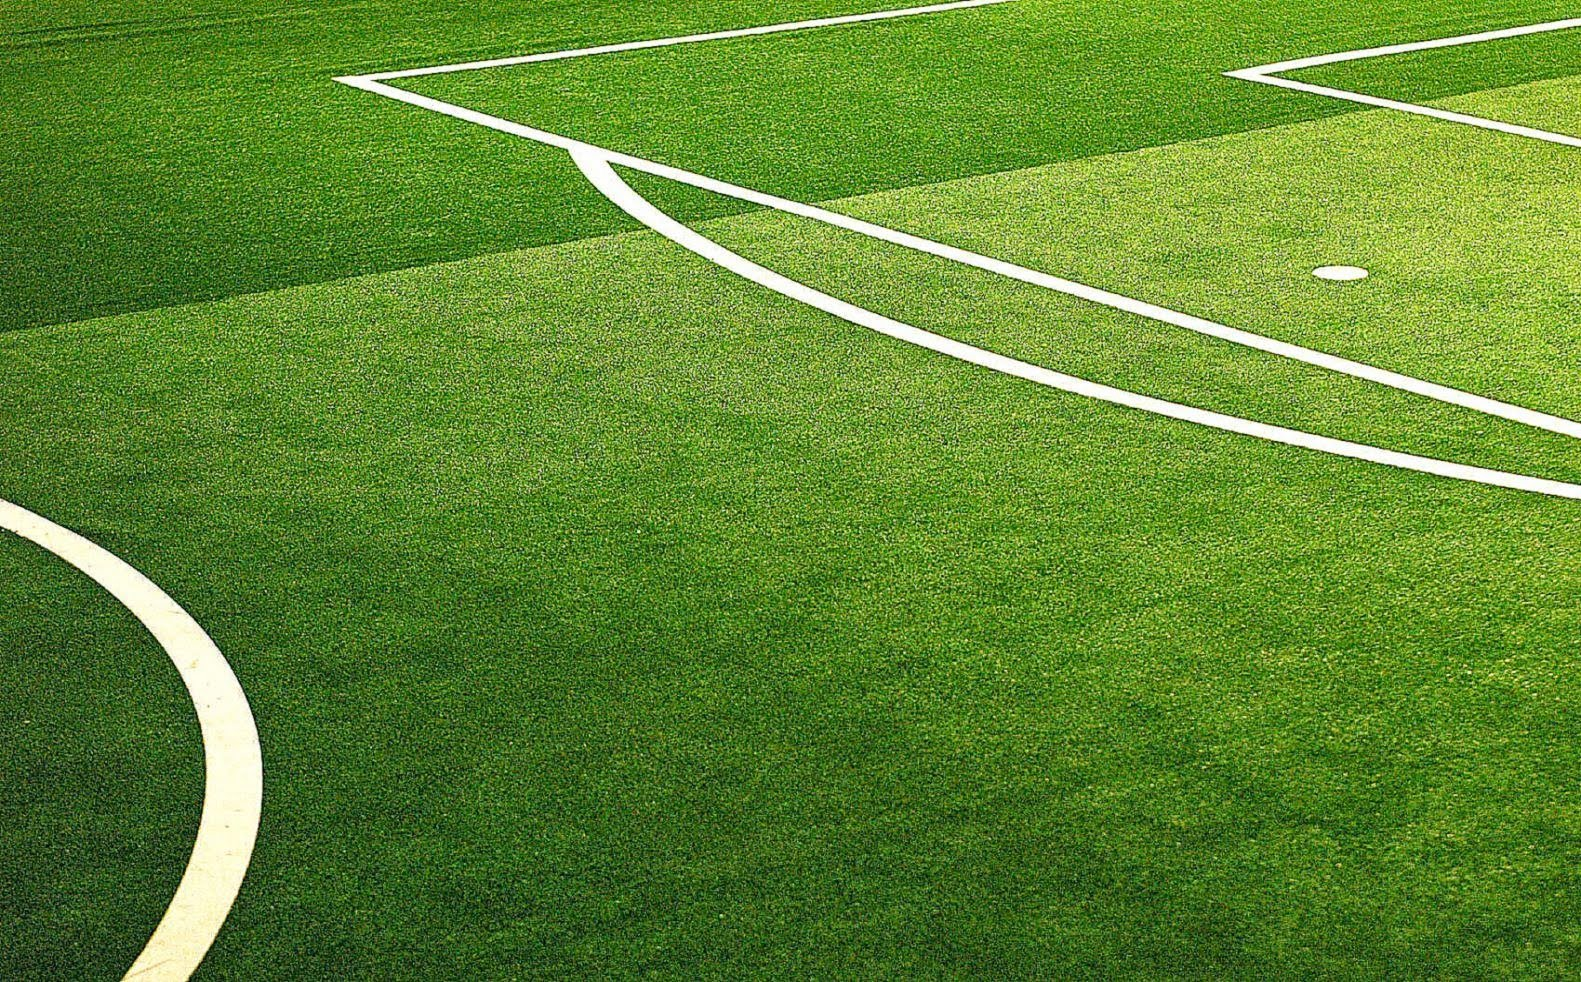 Soccer Field Wallpaper Hd